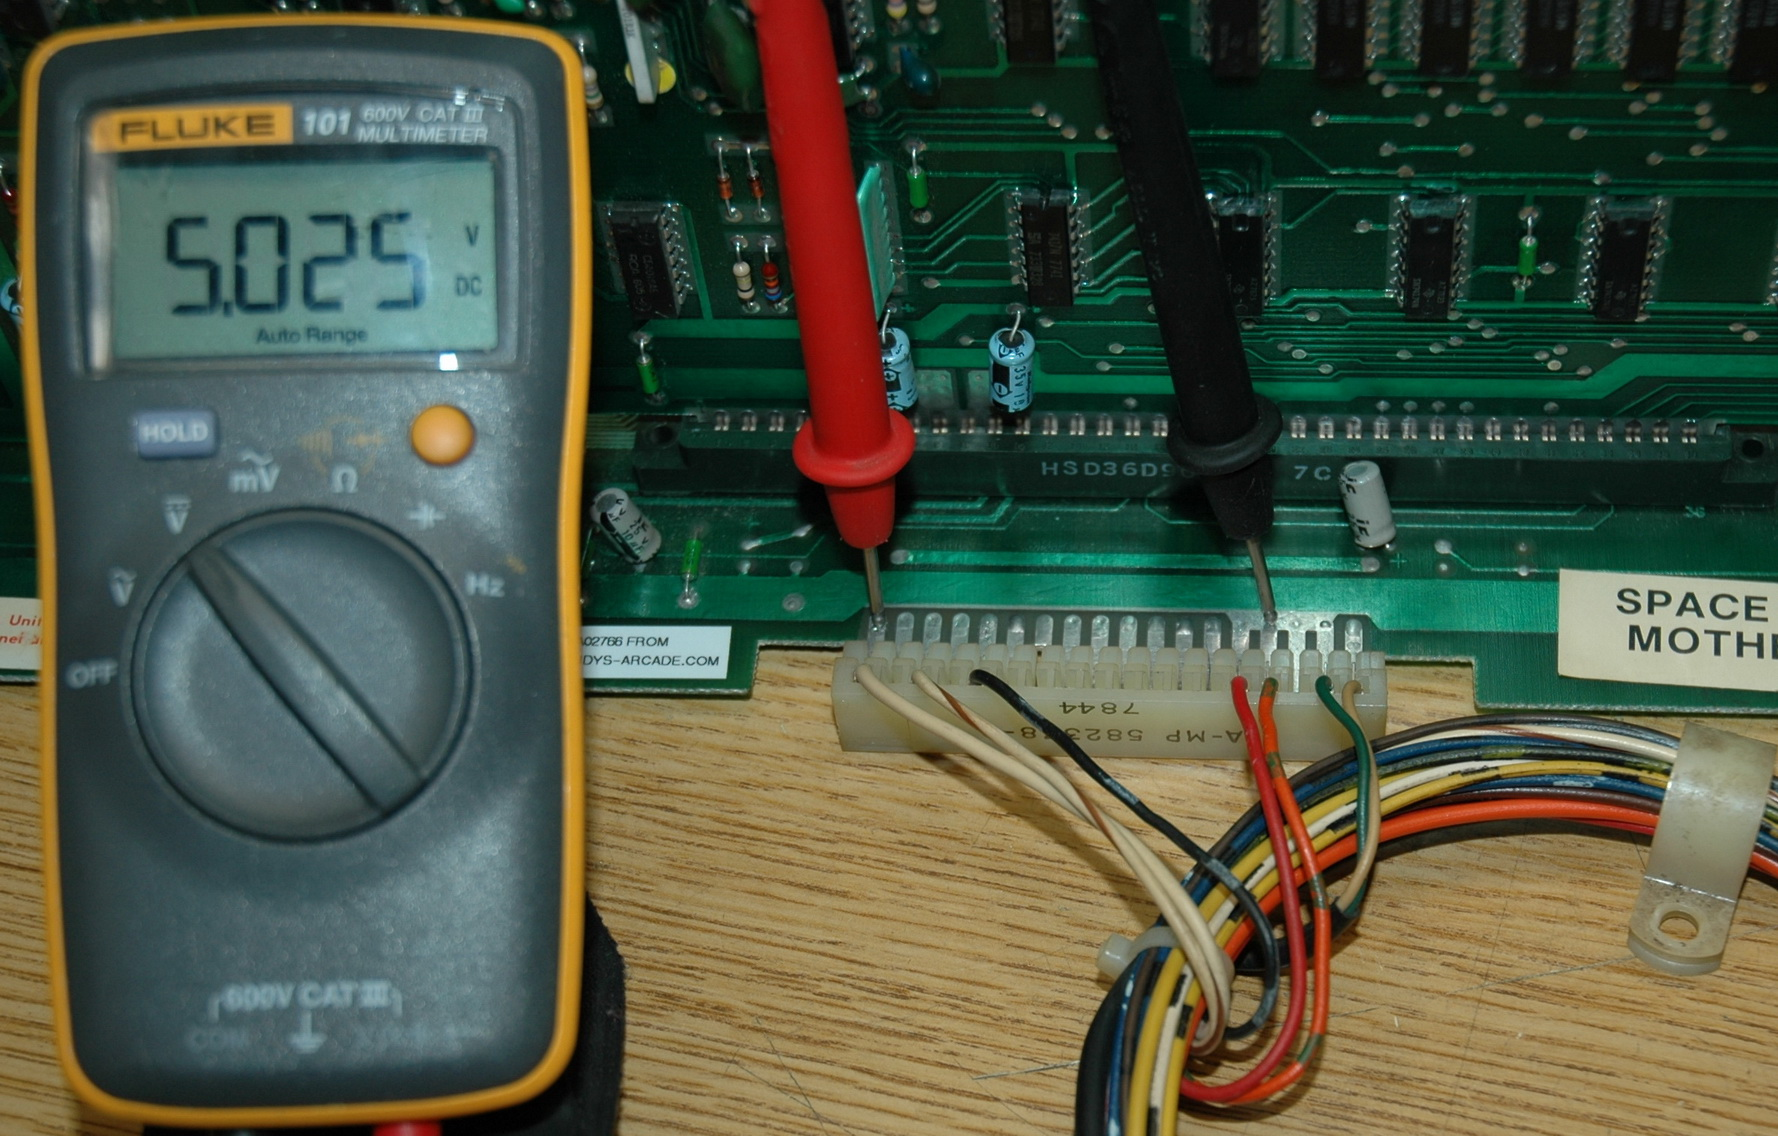 Mid5v midway space invaders pcb power supply voltage measurements